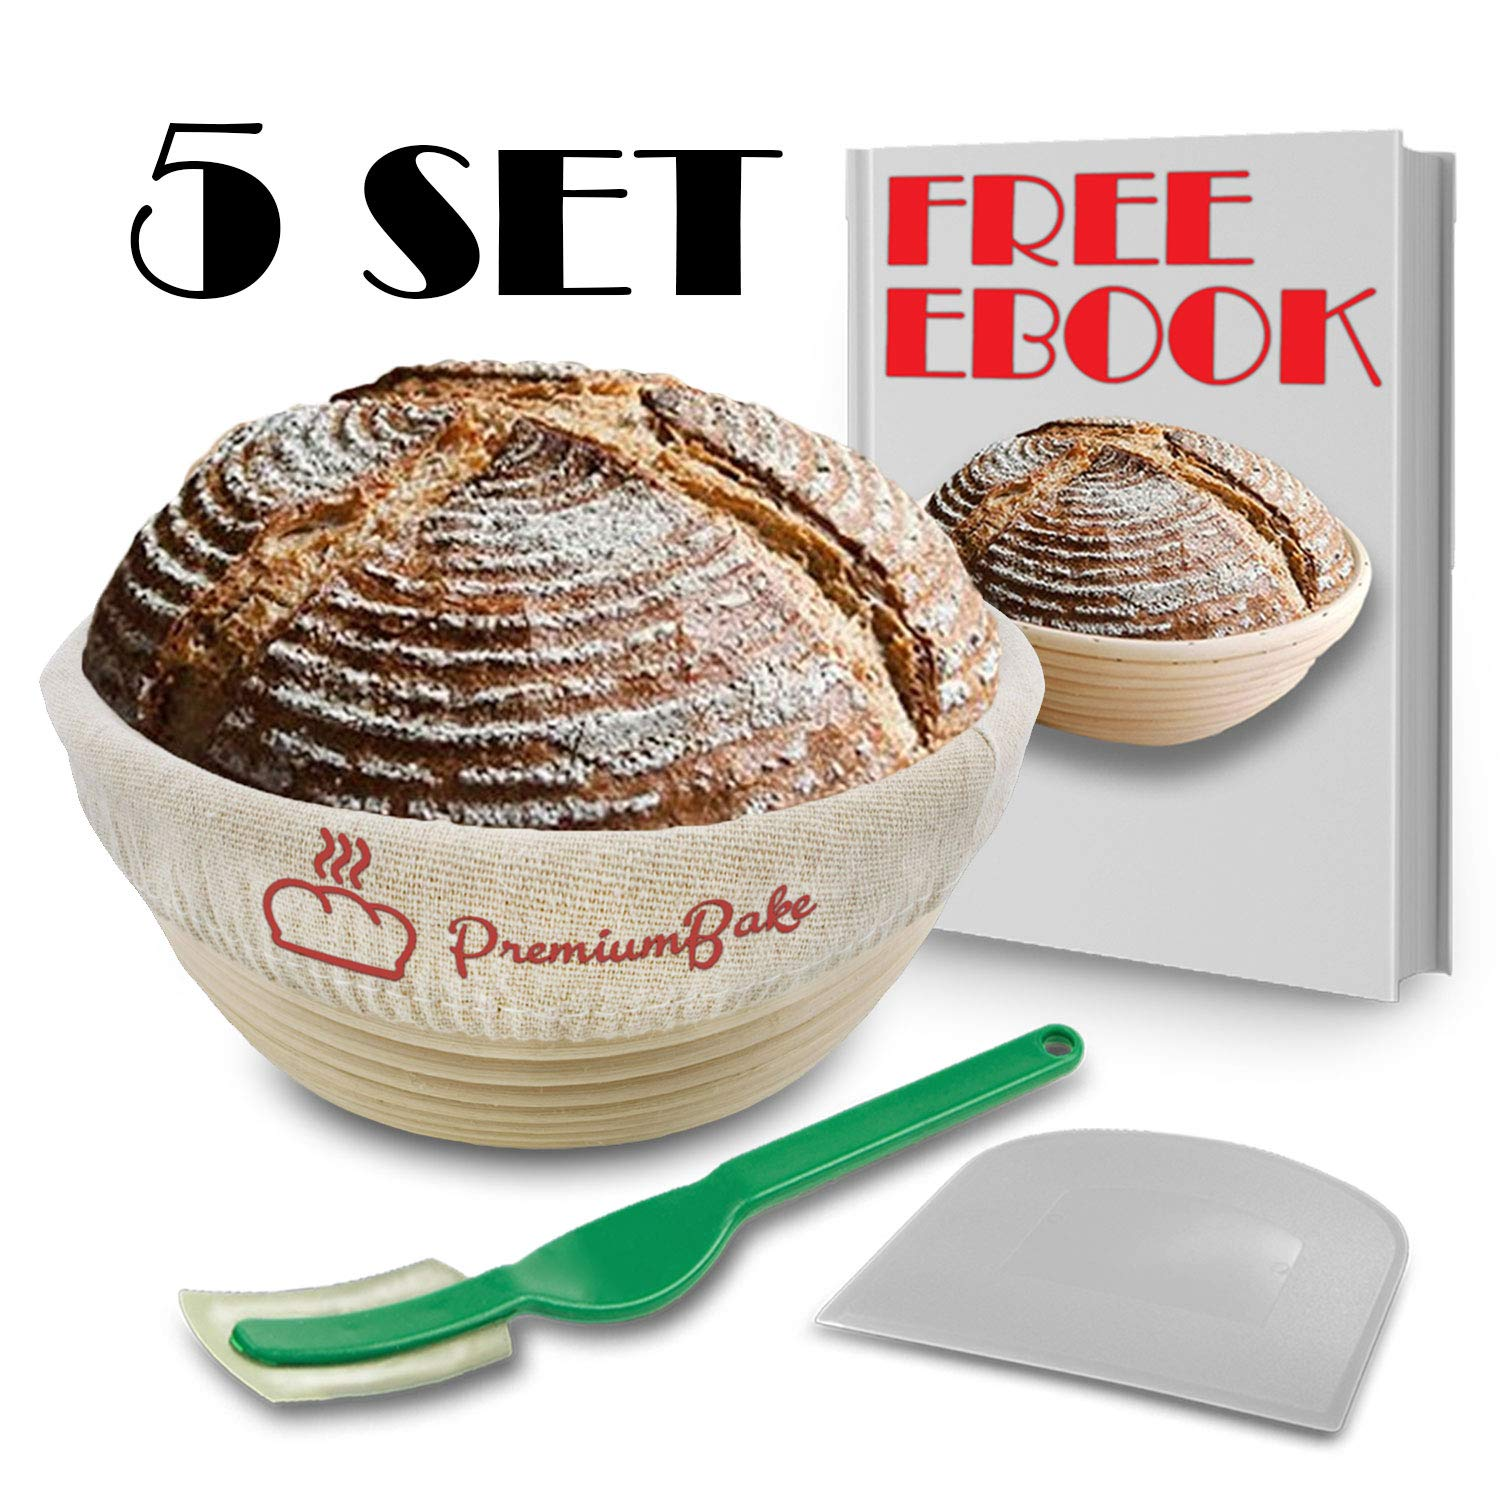 KIT 10 Inch Bread Basket Sourdough Starter - Banneton Proofing Basket, Dough Scraper, Bread Lame, Liner & FREE EBOOK - Bread Proofing Basket for Bread Baking Supplies, Bread Making Tools